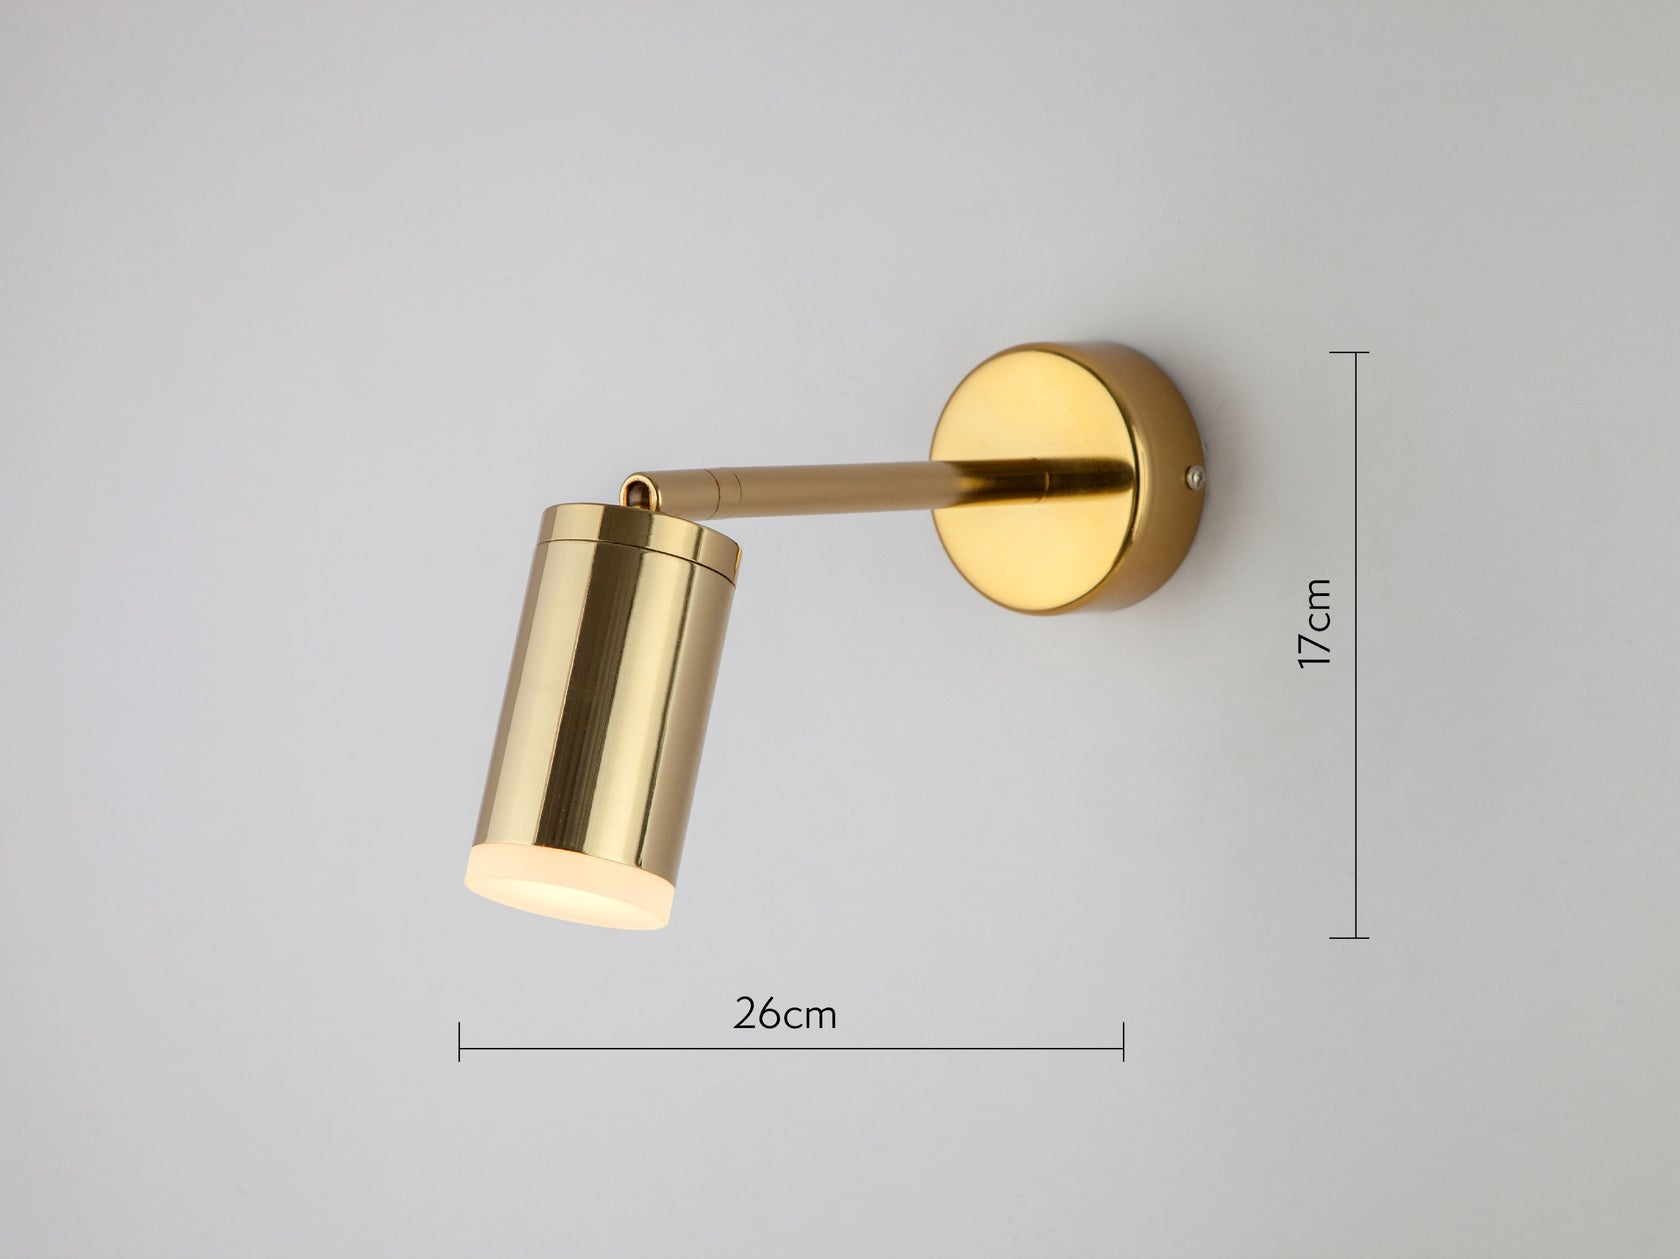 LED task wall light brass | dimension | houseof.com